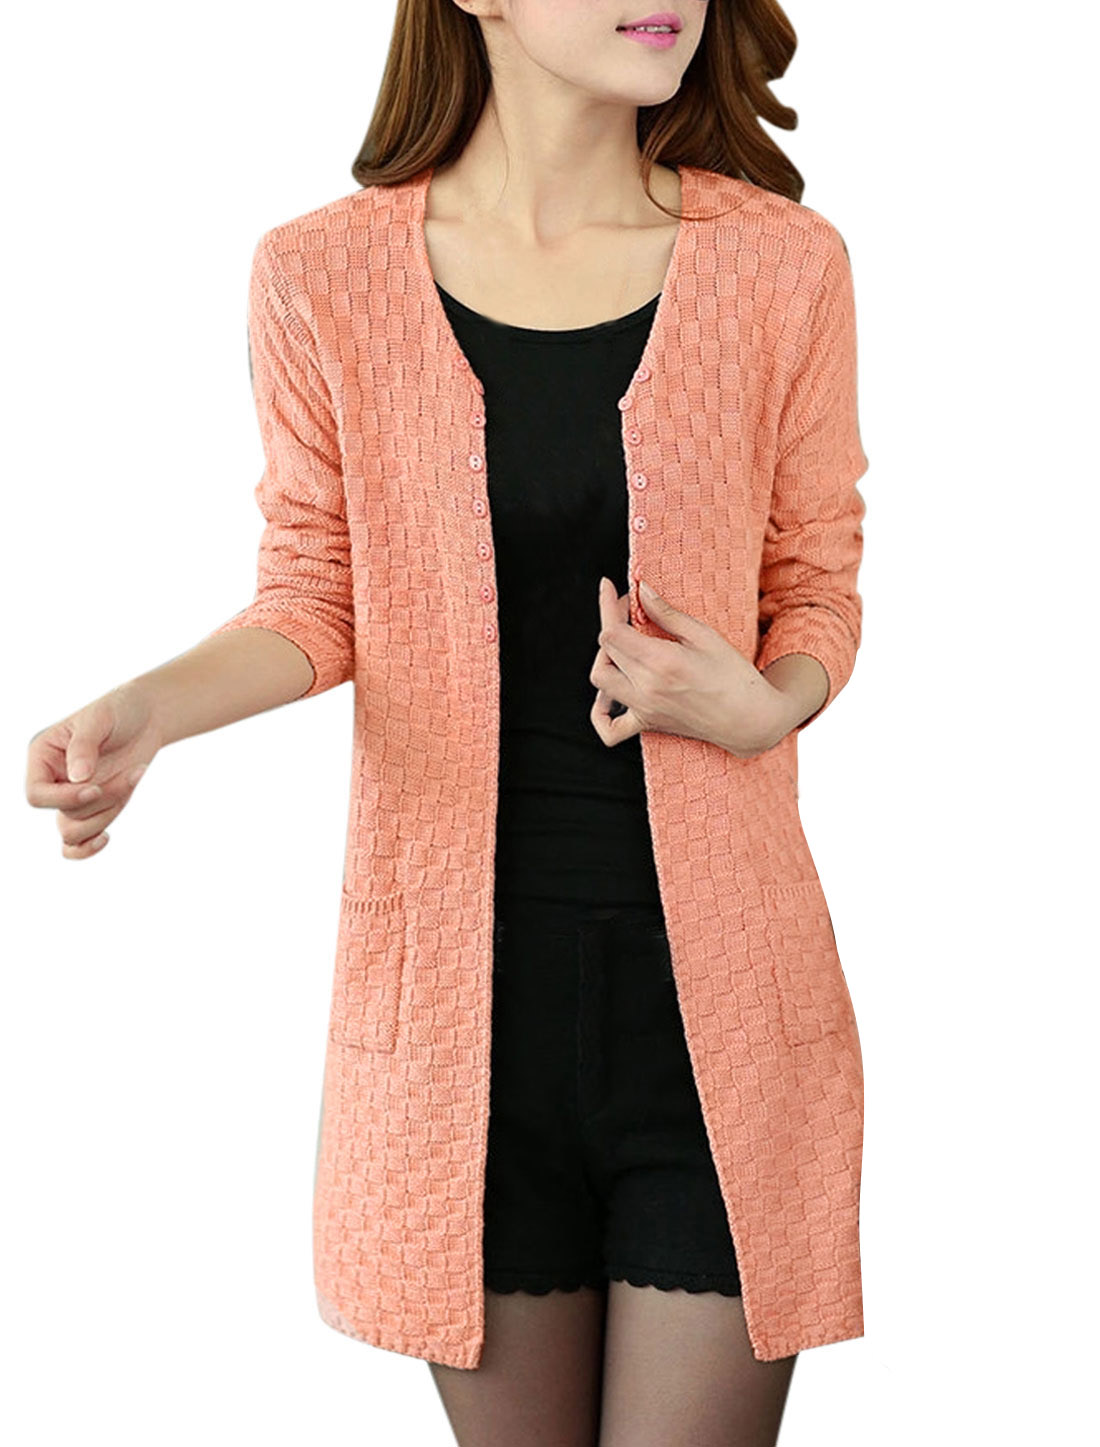 Lady Front Opening Buttons Decor Leisure Knitting Cardigan Coral S